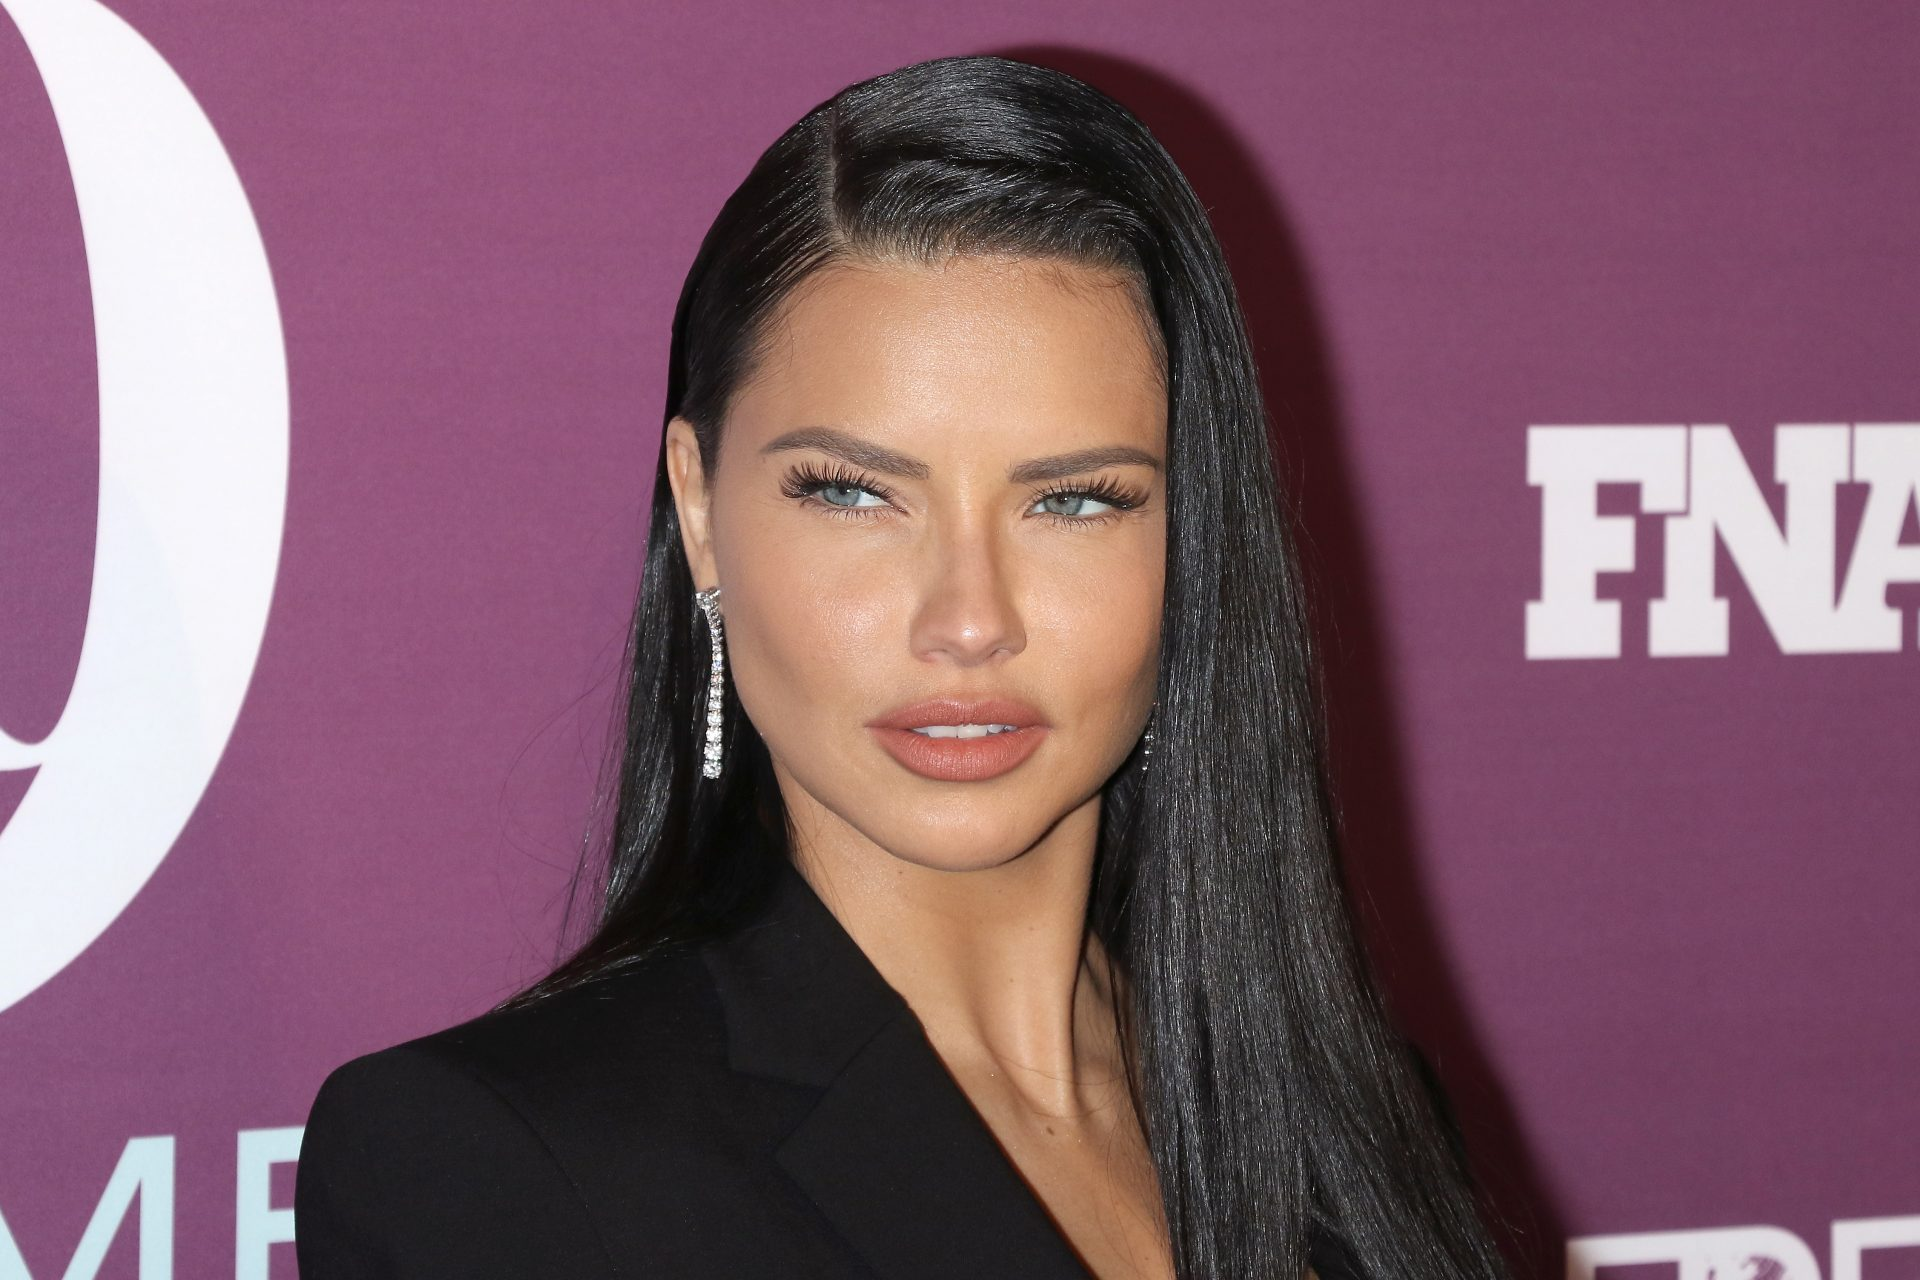 Adriana Lima and Megan Fox's flirty exchange that resulted in a date!